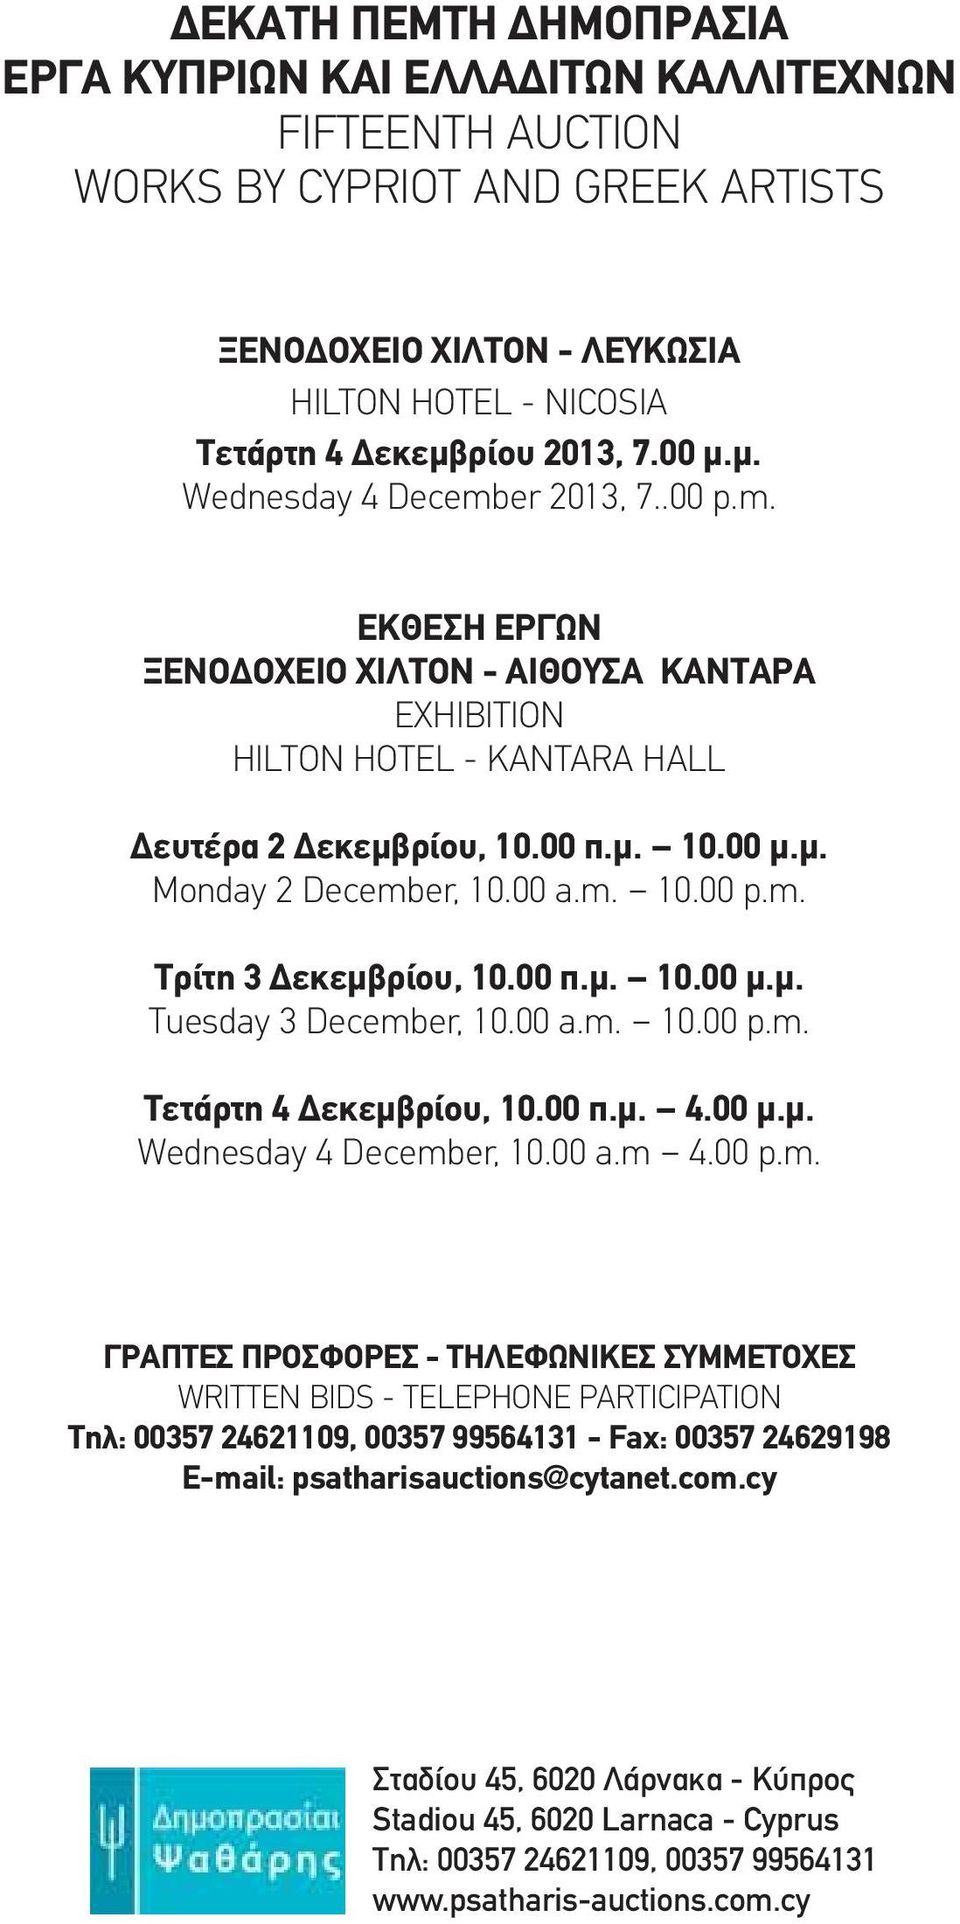 00 a.m. 10.00 p.m. Τρίτη 3 Δεκεμβρίου, 10.00 π.μ. 10.00 μ.μ. Tuesday 3 December, 10.00 a.m. 10.00 p.m. Τετάρτη 4 Δεκεμβρίου, 10.00 π.μ. 4.00 μ.μ. Wednesday 4 December, 10.00 a.m 4.00 p.m. ΓΡΑΠΤΕΣ ΠΡΟΣΦΟΡΕΣ - ΤΗΛΕΦΩΝΙΚΕΣ ΣΥΜΜΕΤΟΧΕΣ WRITTEN BIDS - TELEPHONE PARTICIPATION Τηλ: 00357 24621109, 00357 99564131 - Fax: 00357 24629198 E-mail: psatharisauctions@cytanet.